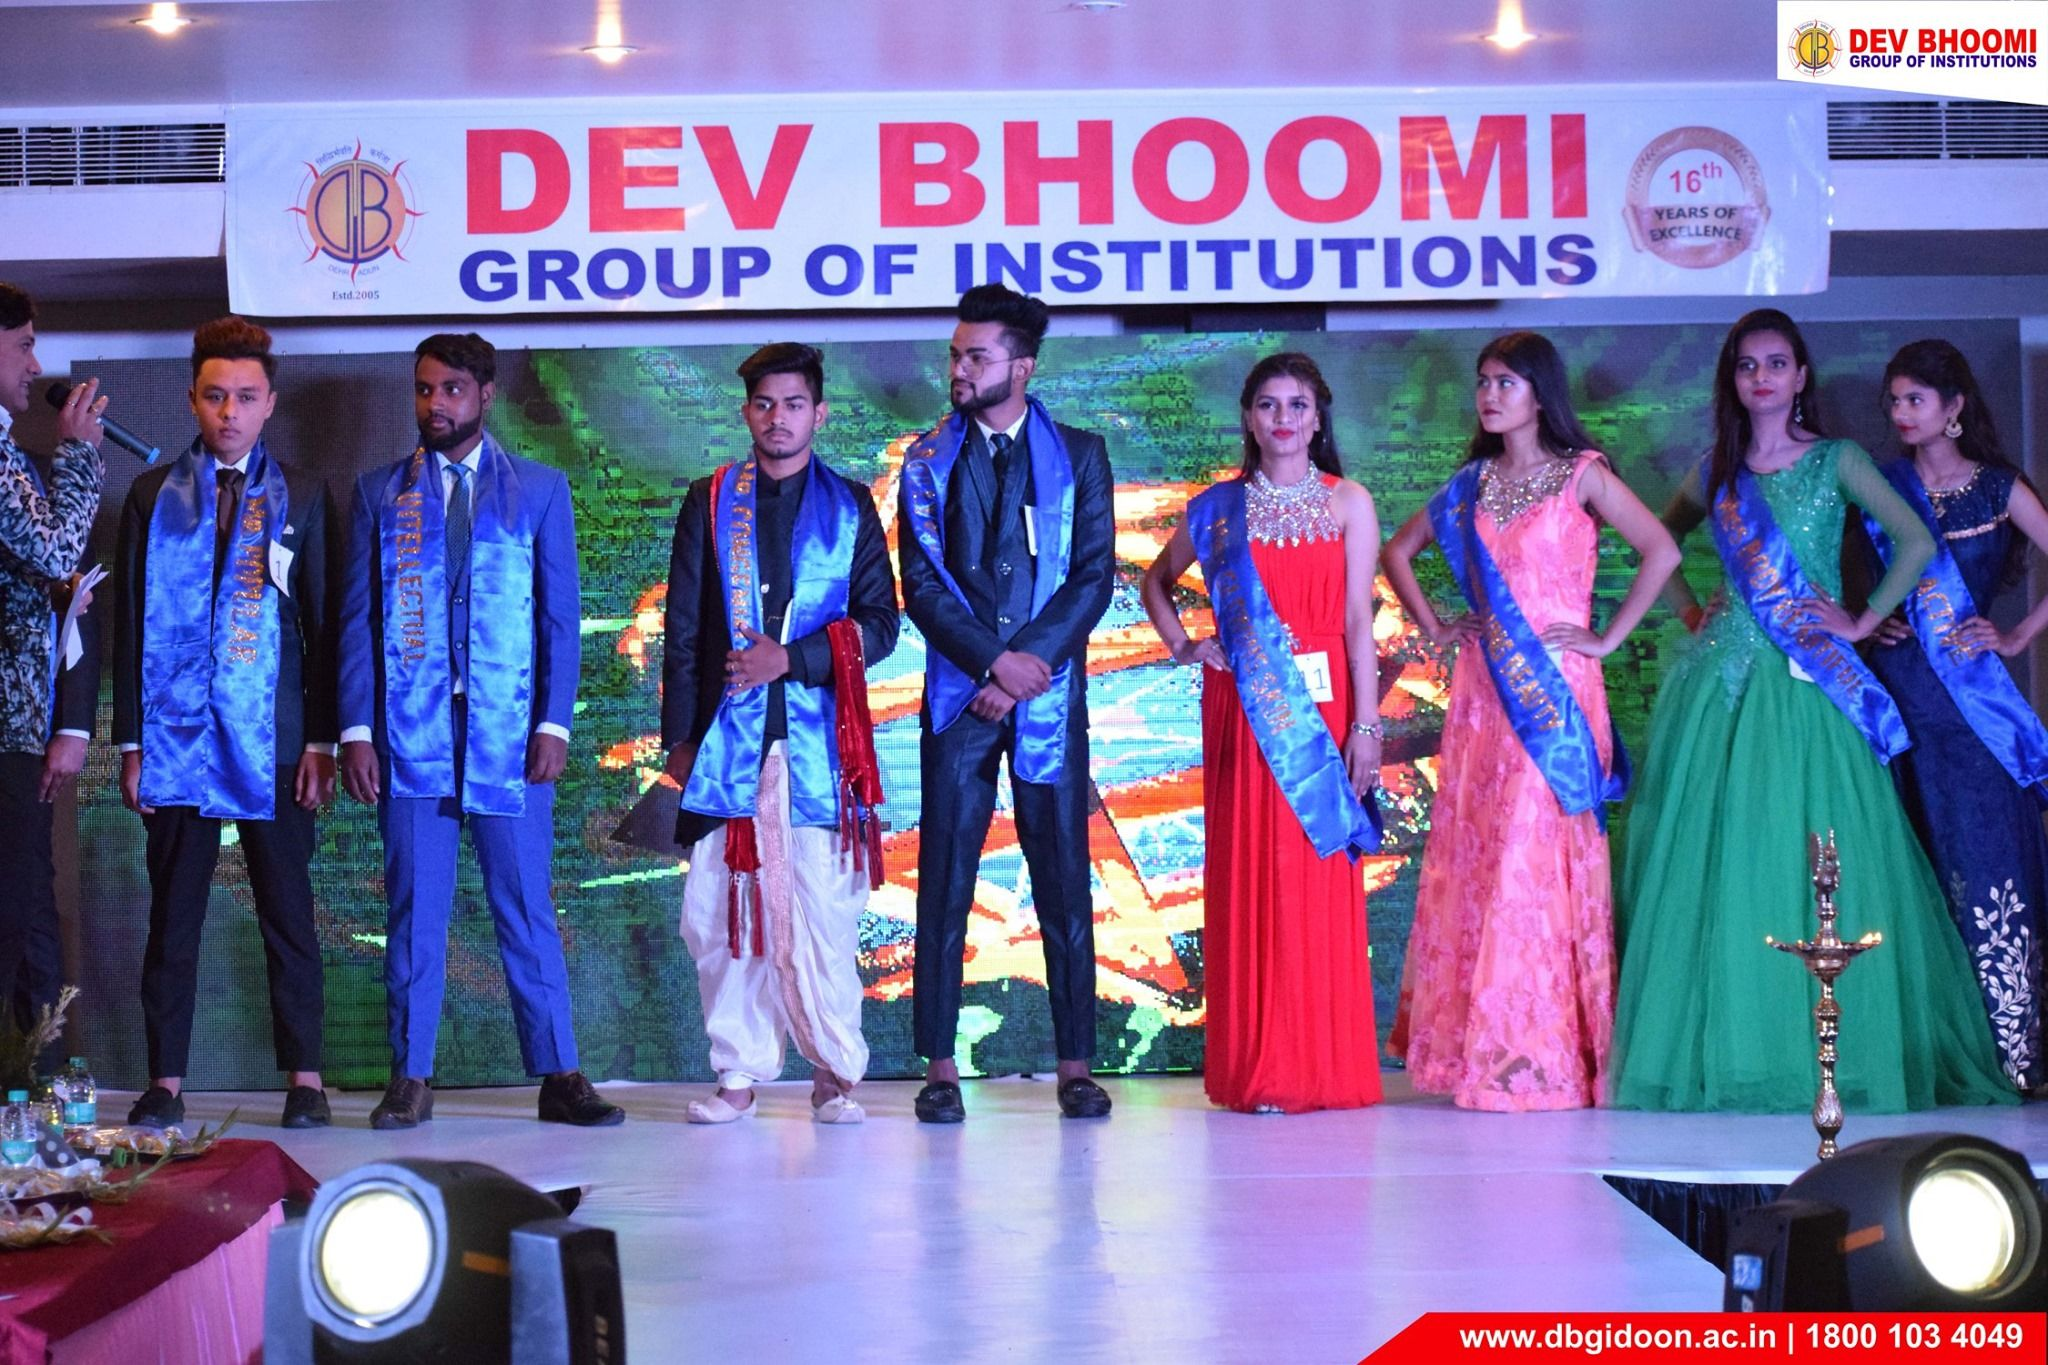 Teenicon2020 Haldwani Dbgi The Department Of Fashion Design Dev Bhoomi Group Of Institutions Organ In 2020 With Images Fashion Design Fashion Designing Colleges Fashion Event